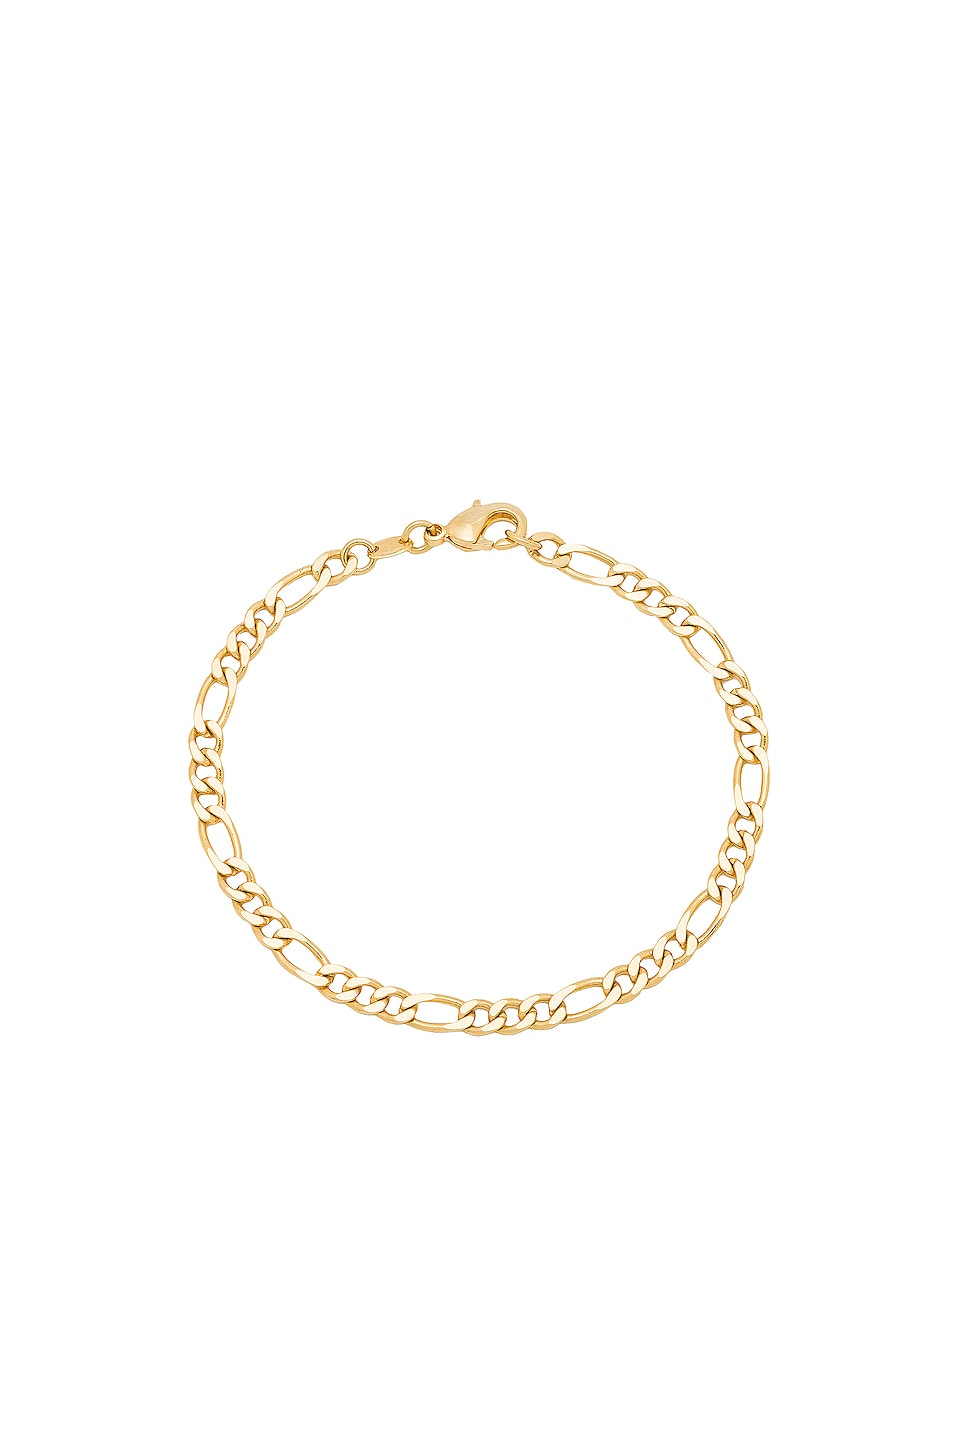 THE M JEWELERS NY The Figaro Link Bracelet in Metallic Gold